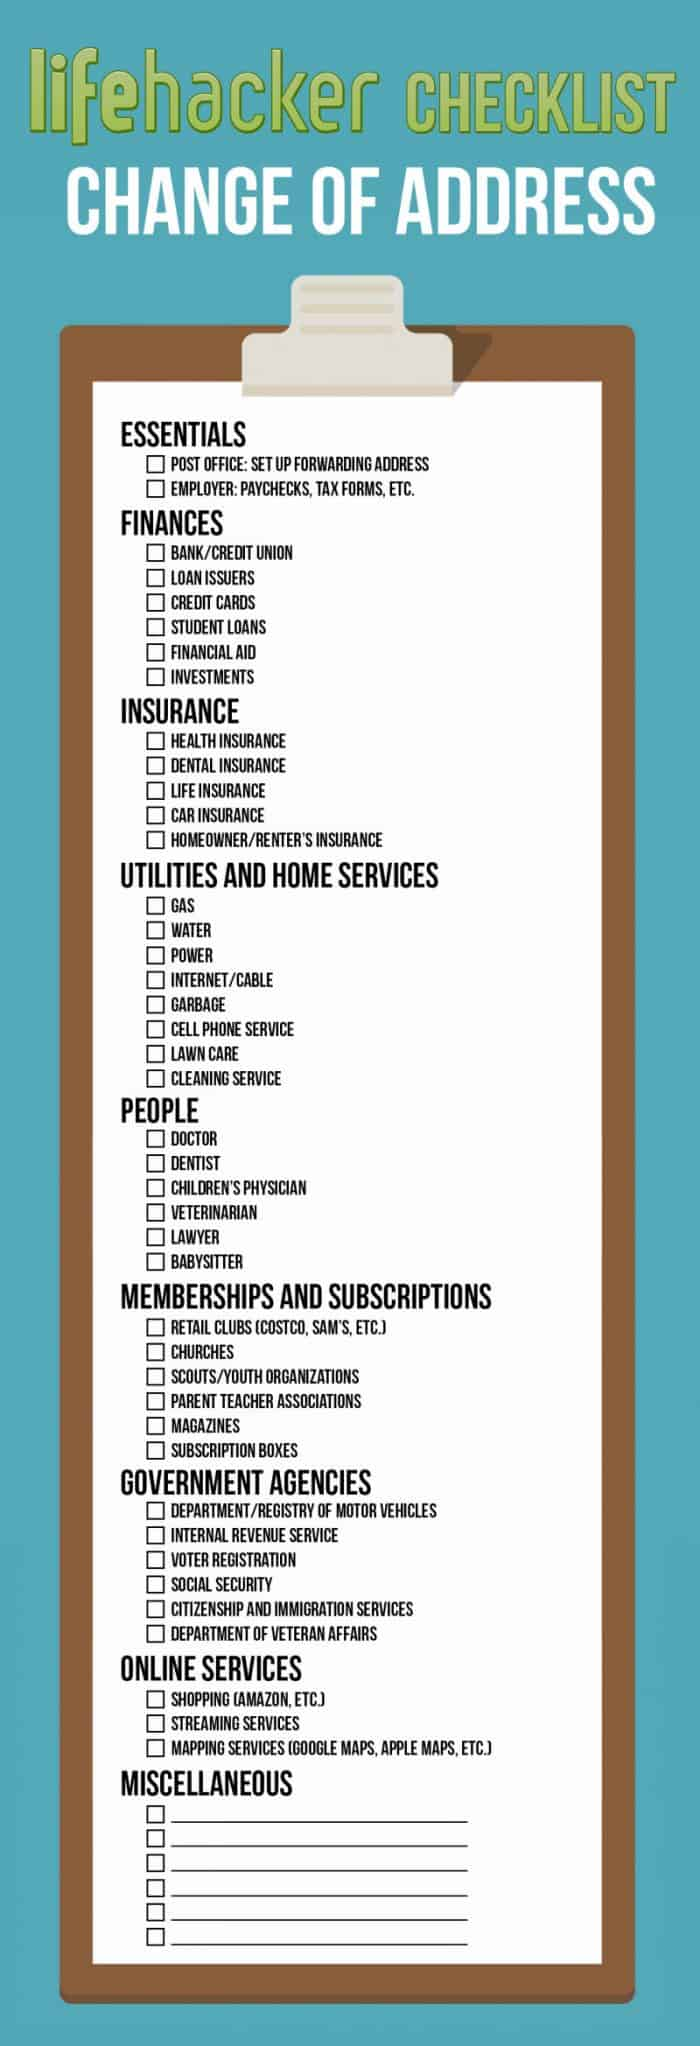 You Guide to Changing Your Address Infographic